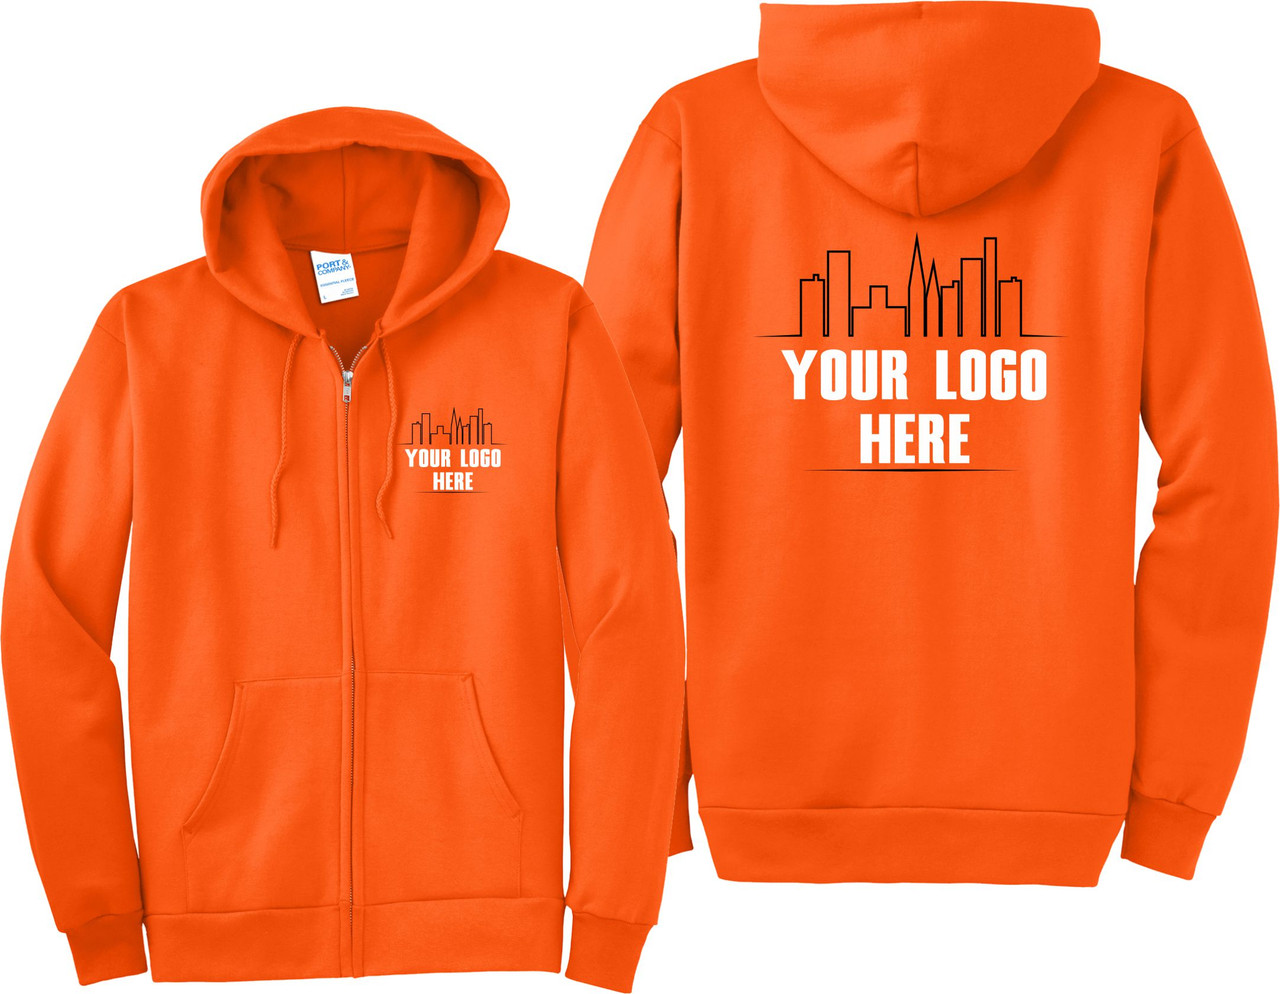 Custom Printed Logo on Hi Vis Safety Orange Zip Up Hoodies.  Safety Imprints can print your logo on Jackets, Hoodies, and Hi Vis Apparel.